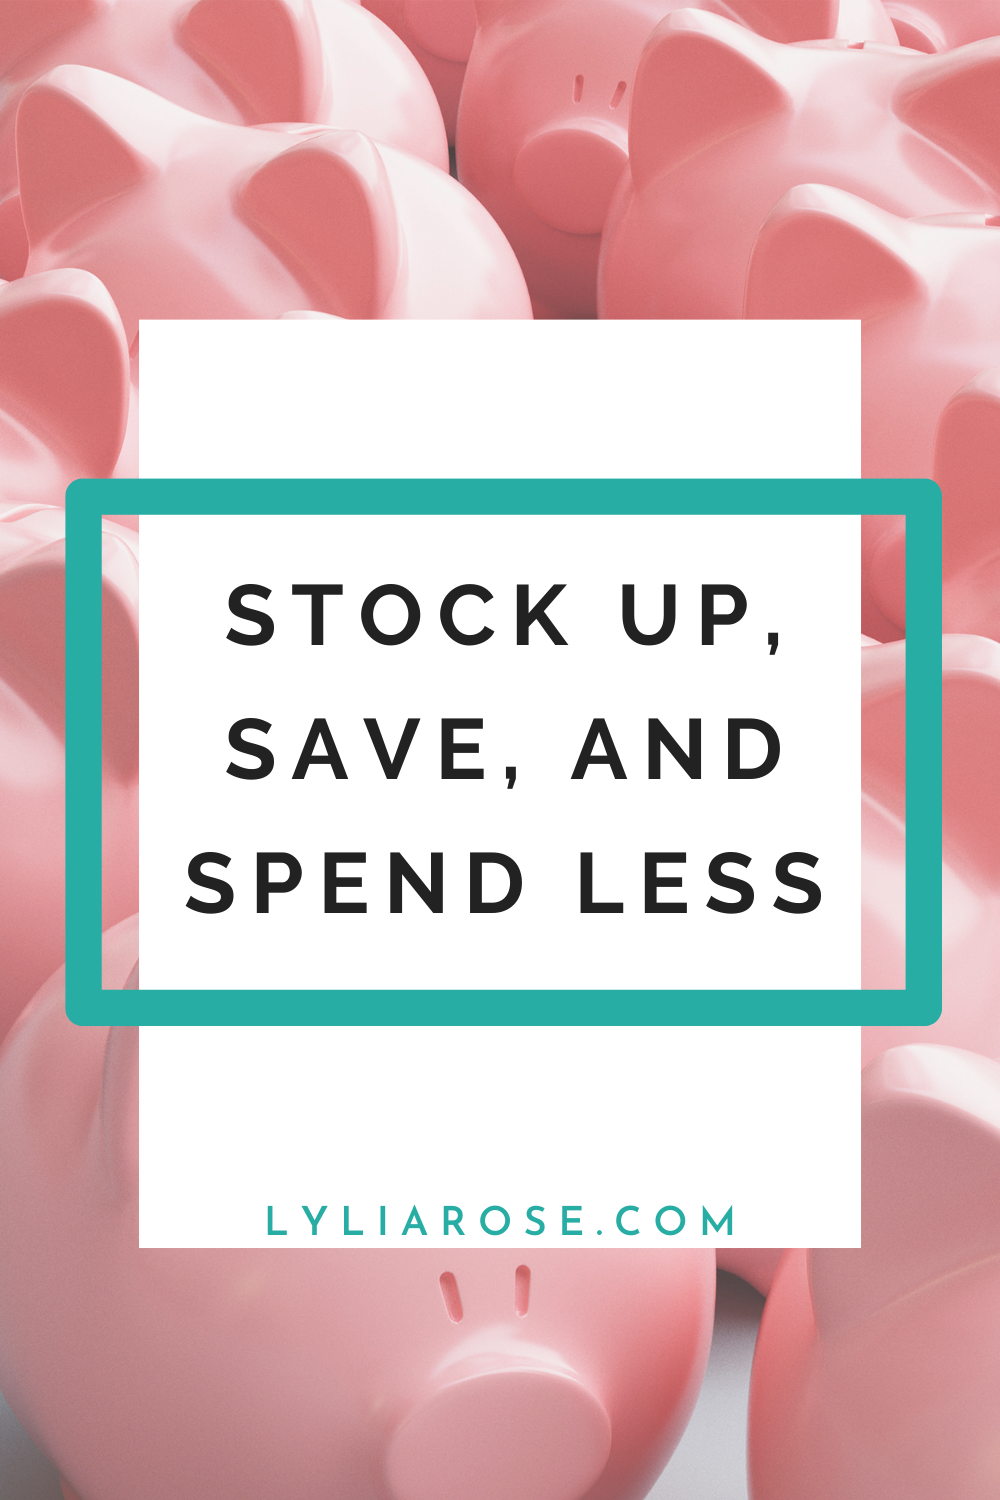 Stock up, save, and spend less